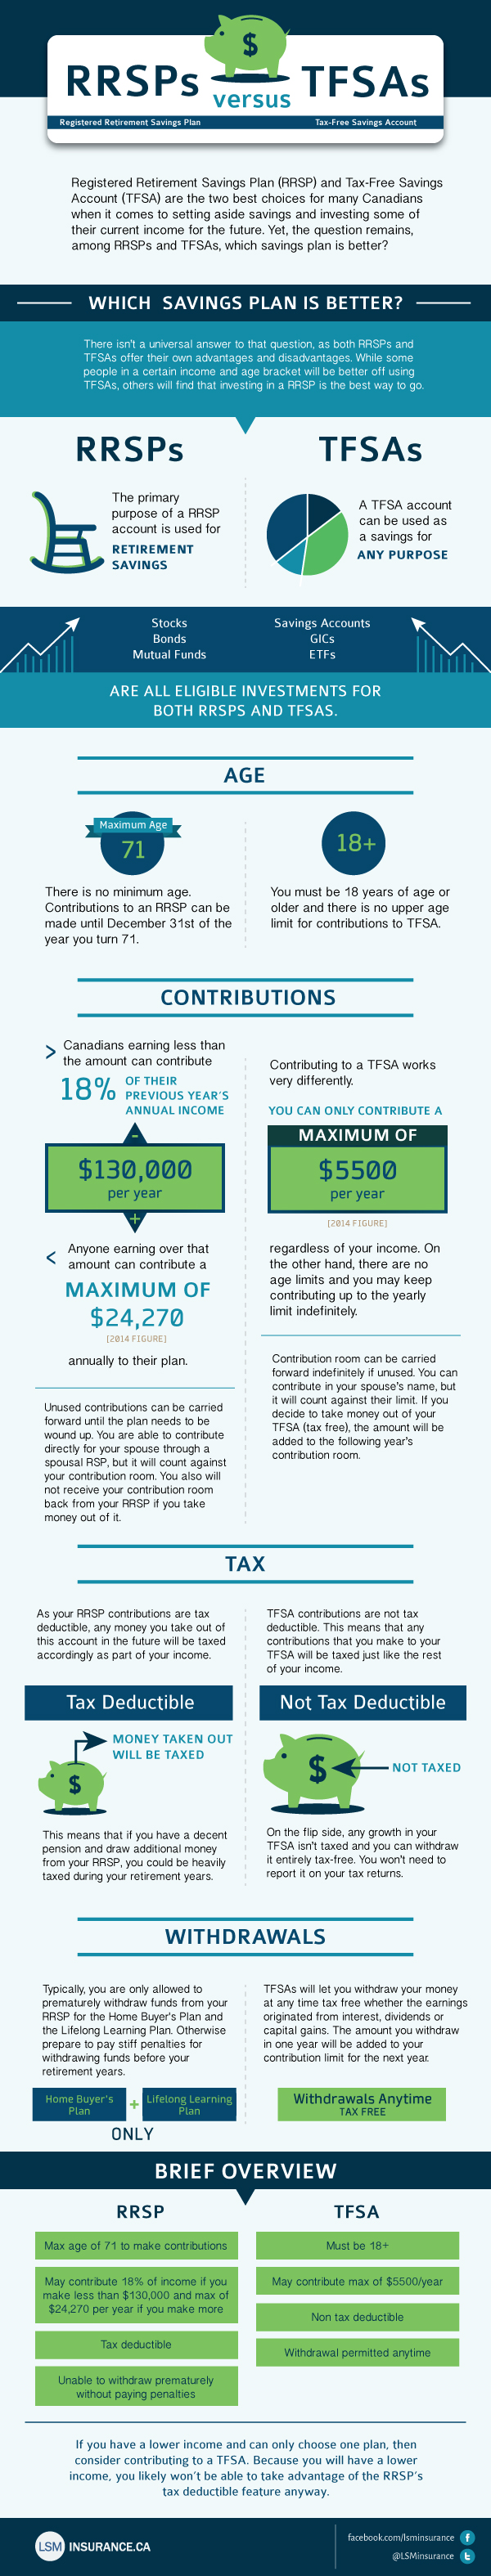 tfsa rrsp infographic